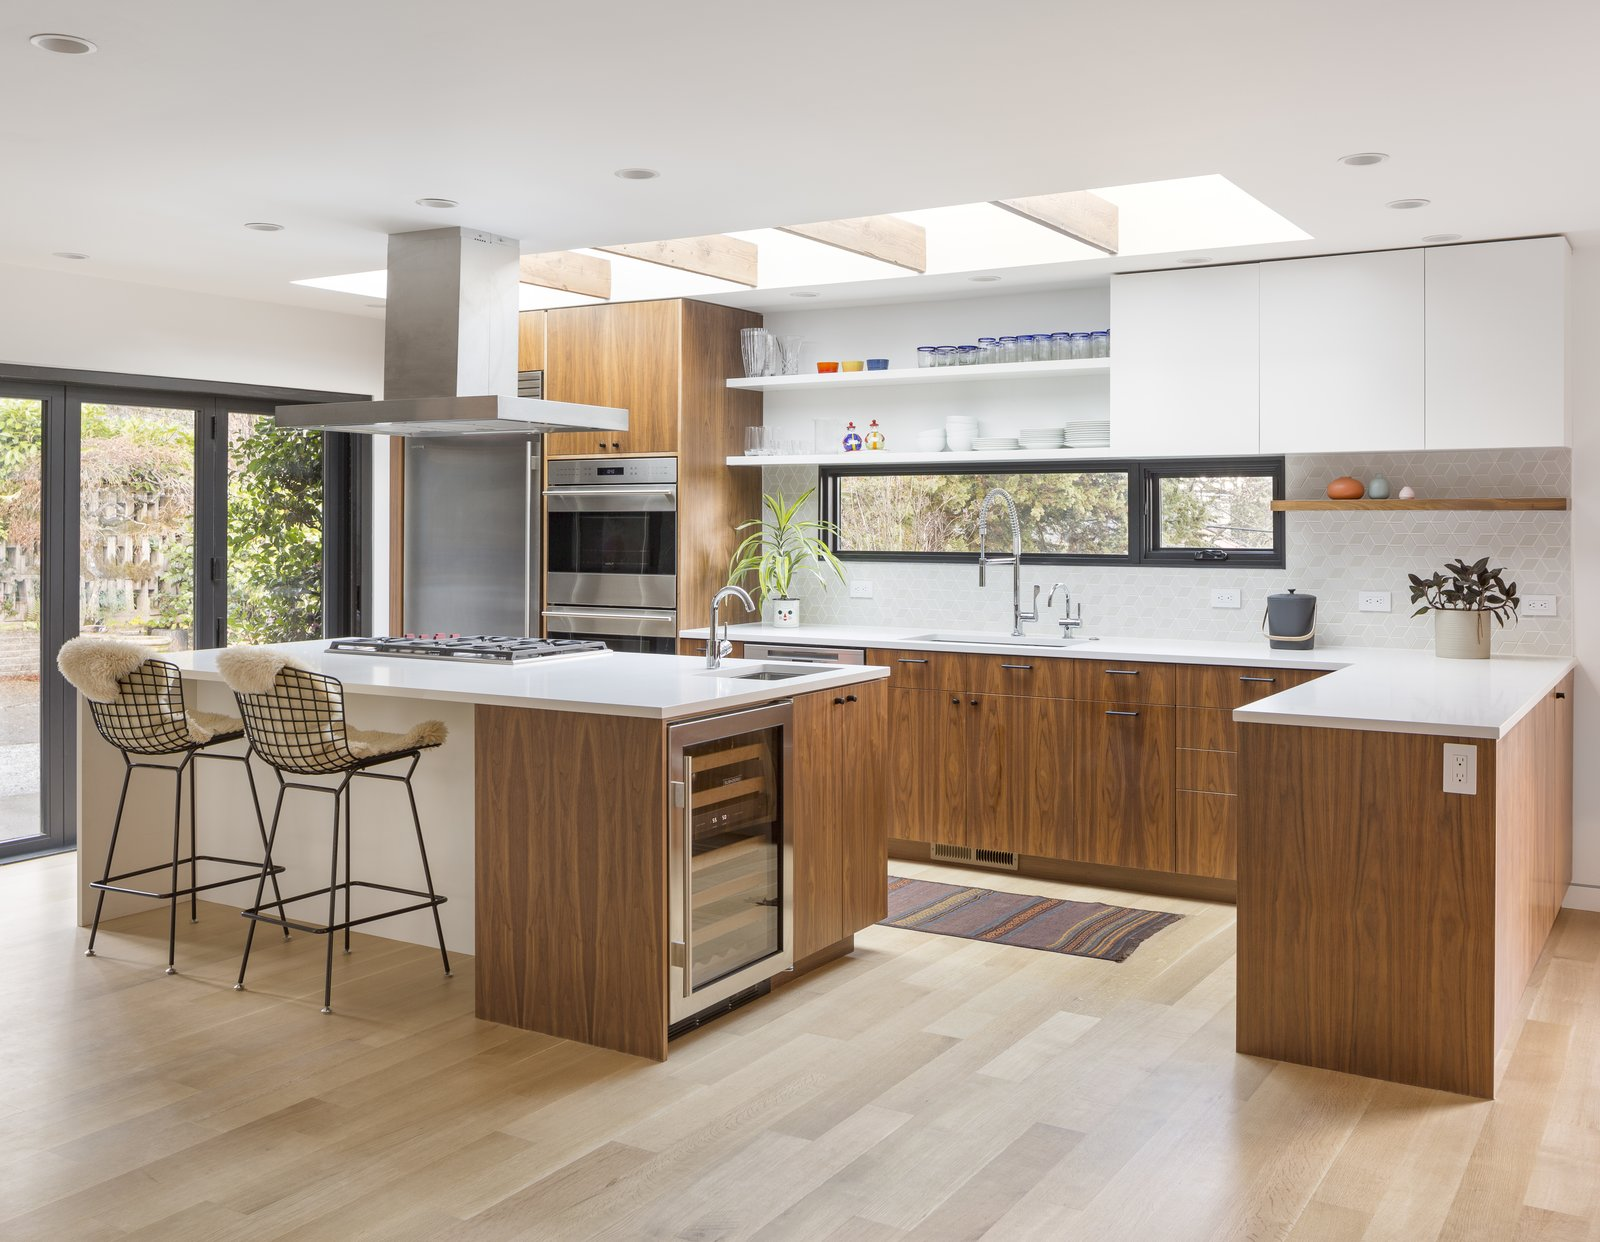 """Portland-base pastry chef Andrea Nicholas purchased a 1953 midcentury ranch whose 2,500 square feet needed """"a lot of TLC."""" Nicholas hired architect Risa Boyer to design the renovation, which involved opening up the kitchen to the dining room and creating a contemporary open-plan living space."""